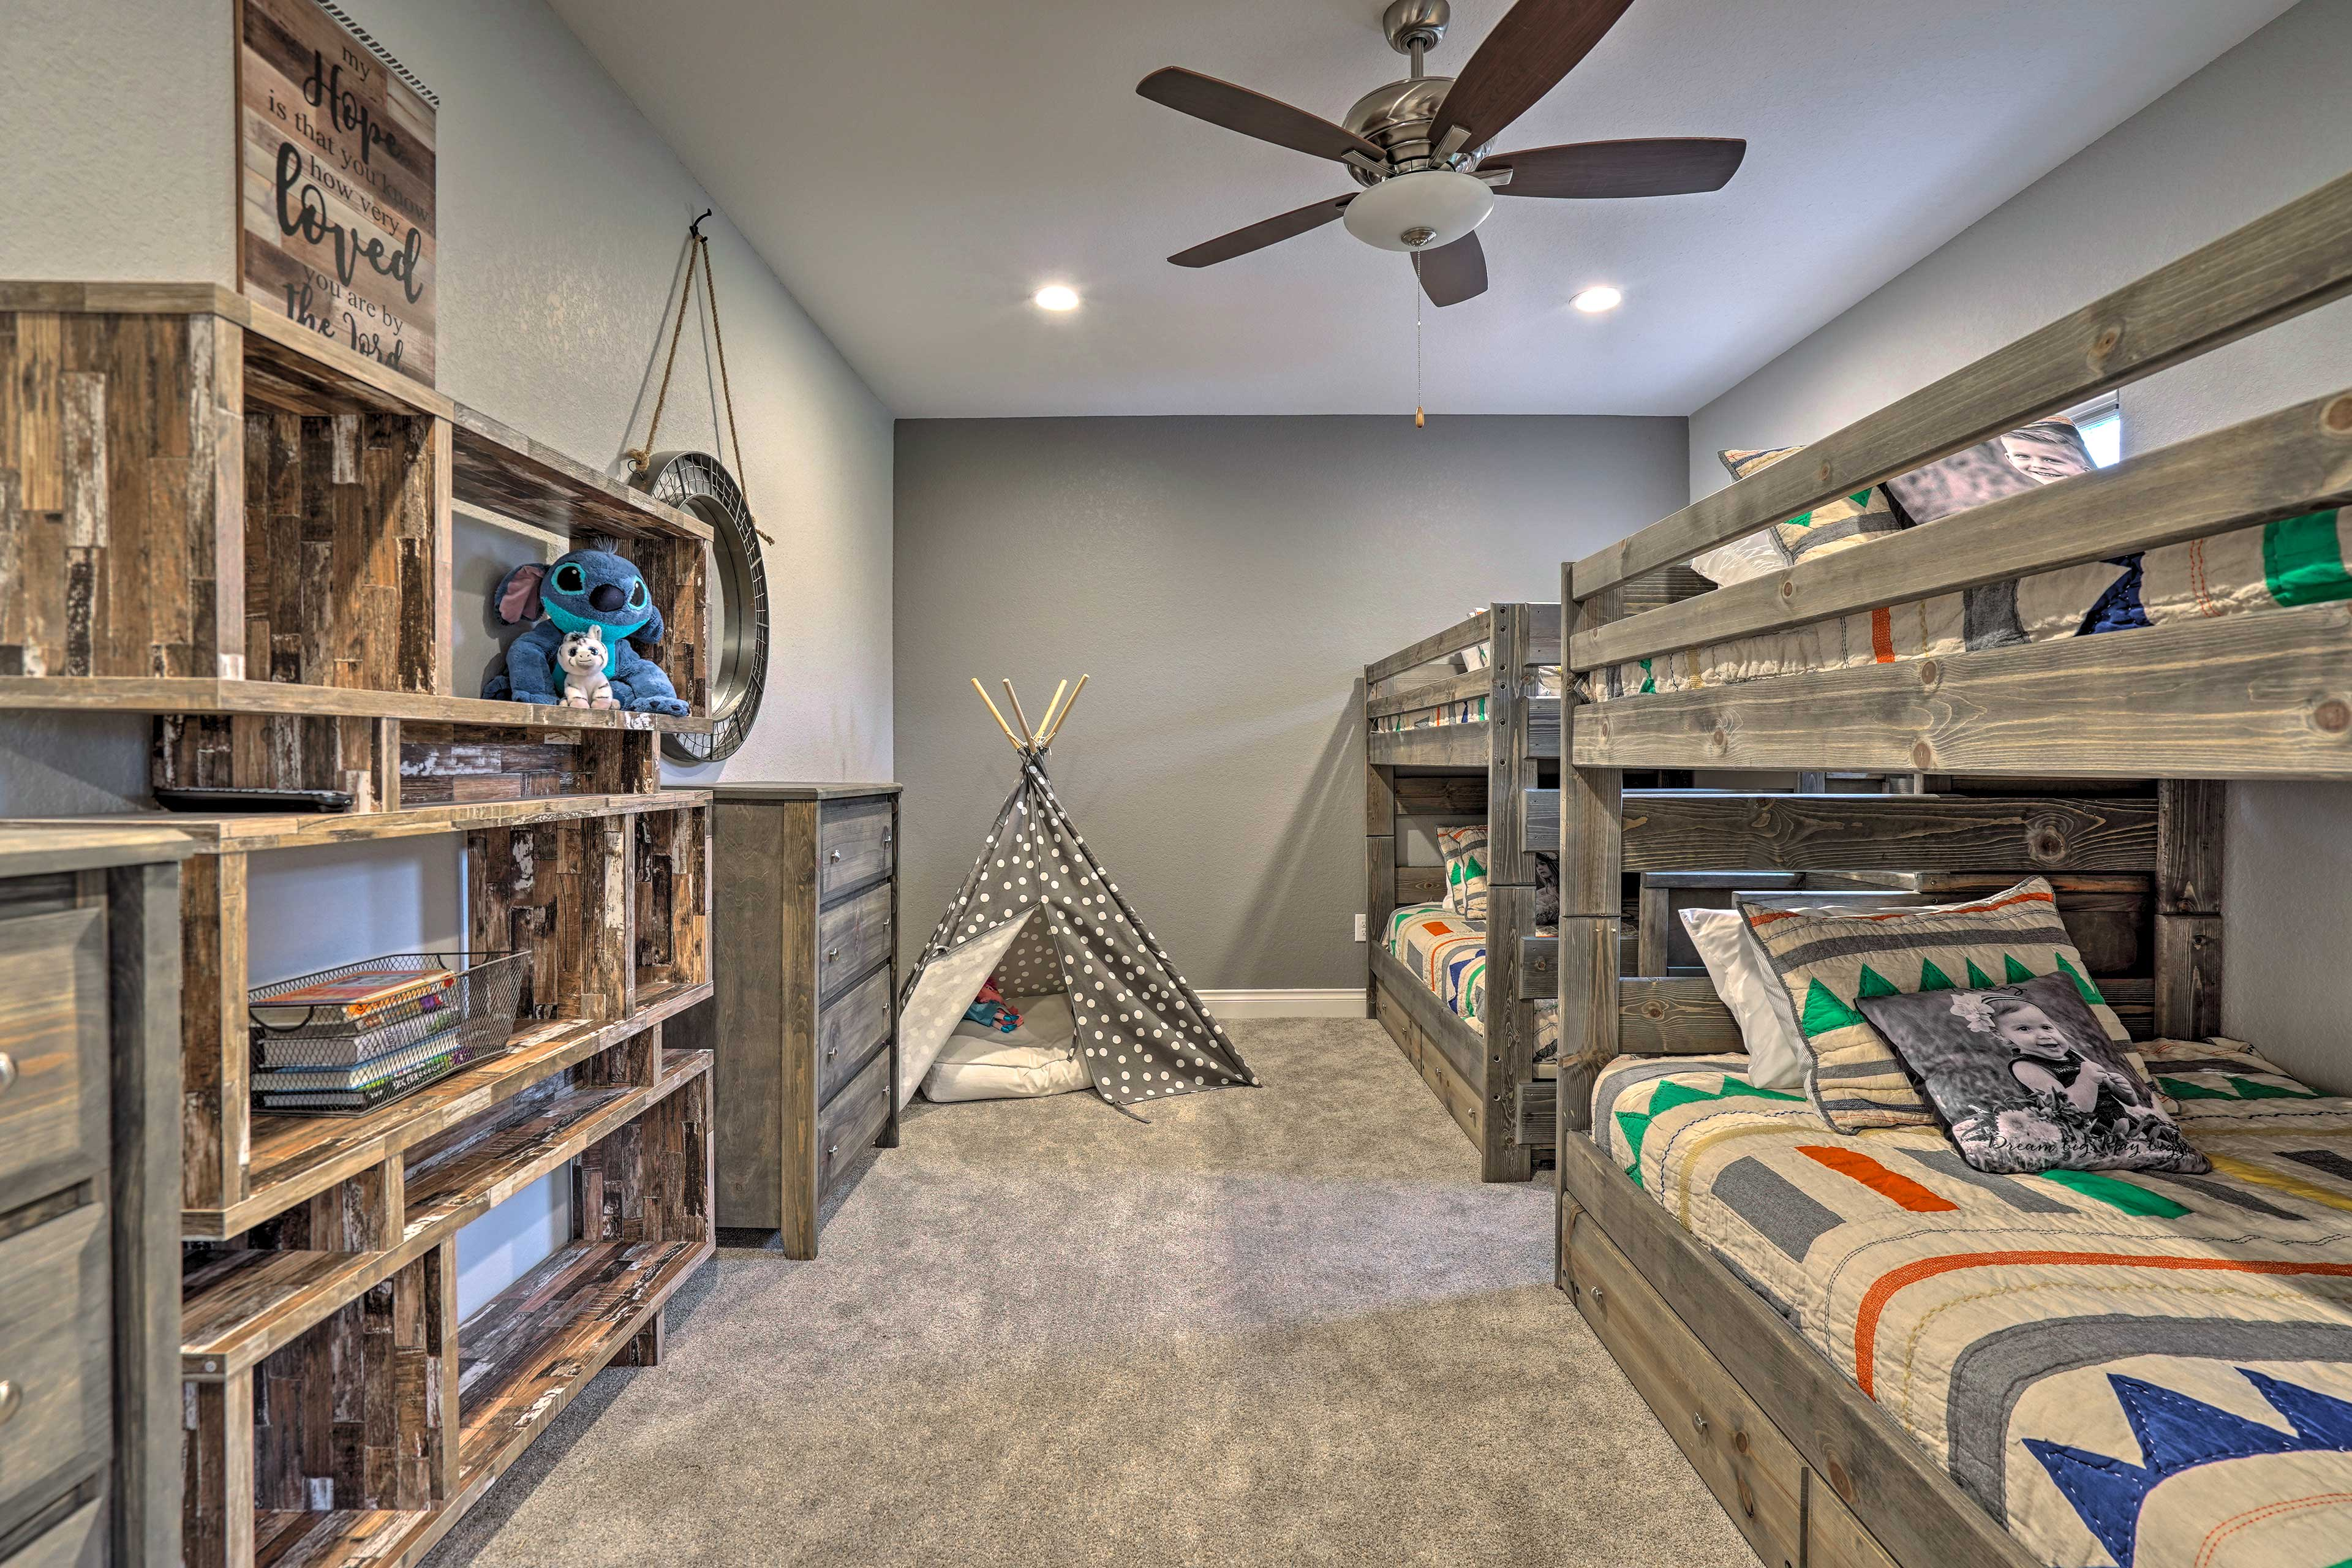 This room is great for kids with a teepee for them to play in.